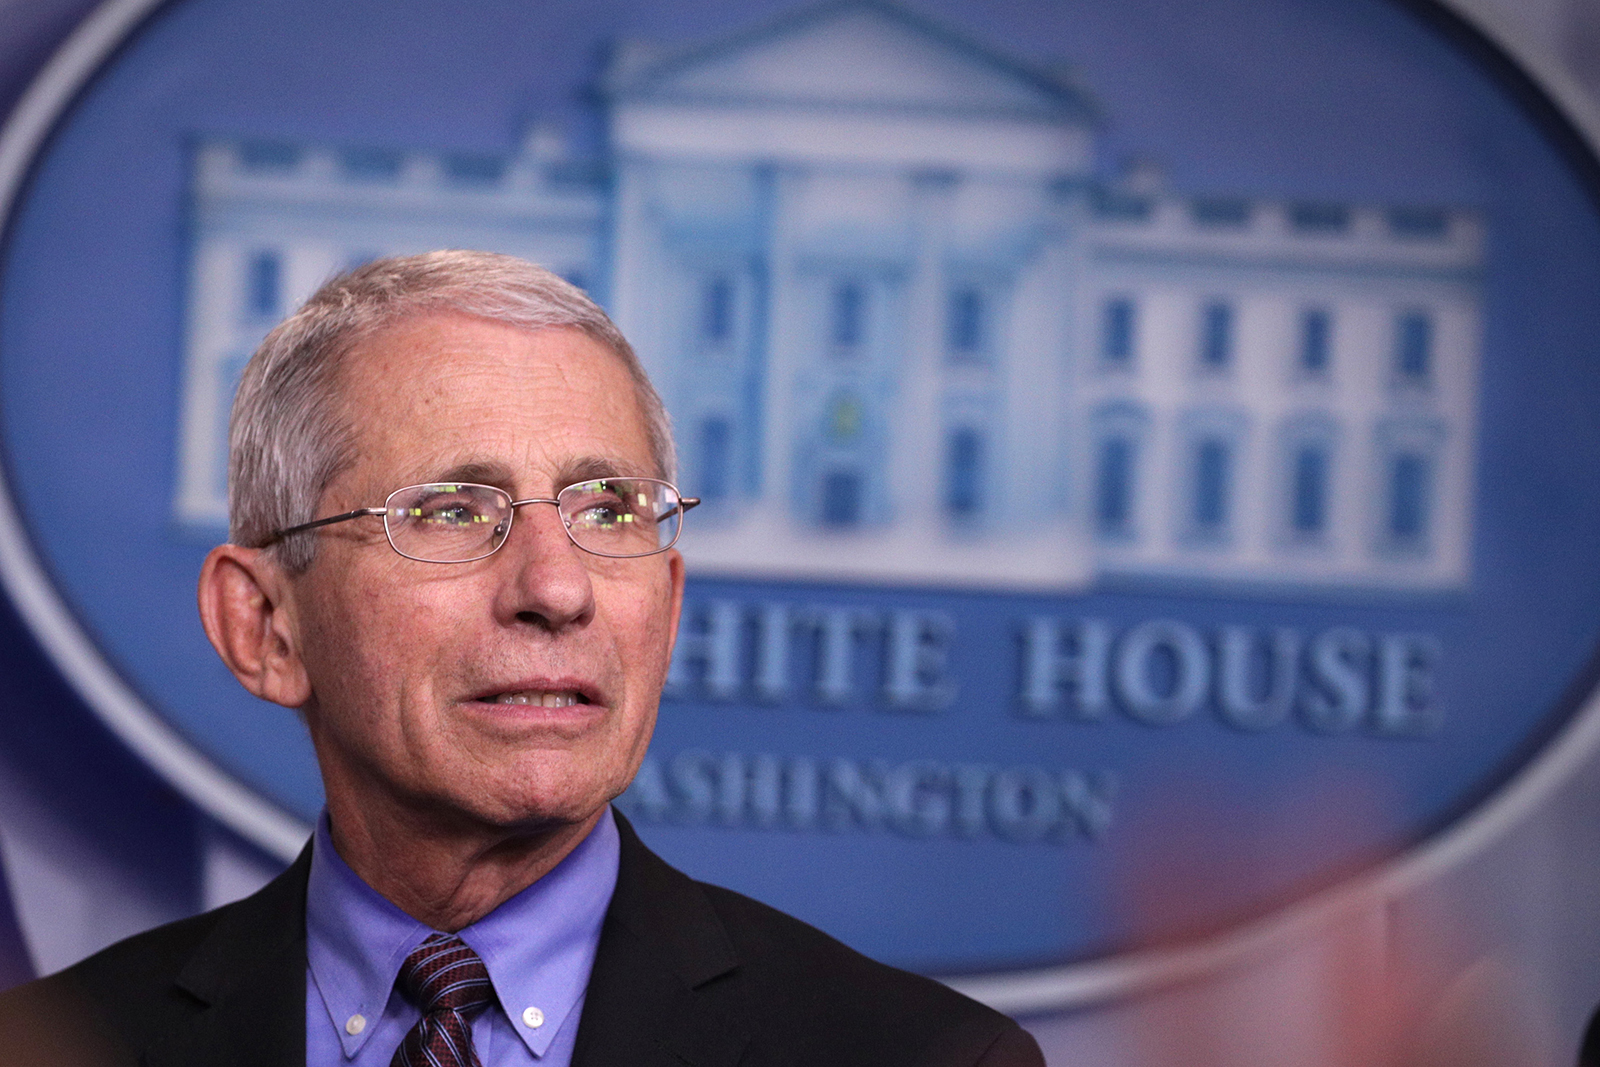 National Institute of Allergy and Infectious Diseases Director Anthony Fauci listens during the daily coronavirus briefing at the White House on April 9, in Washington.